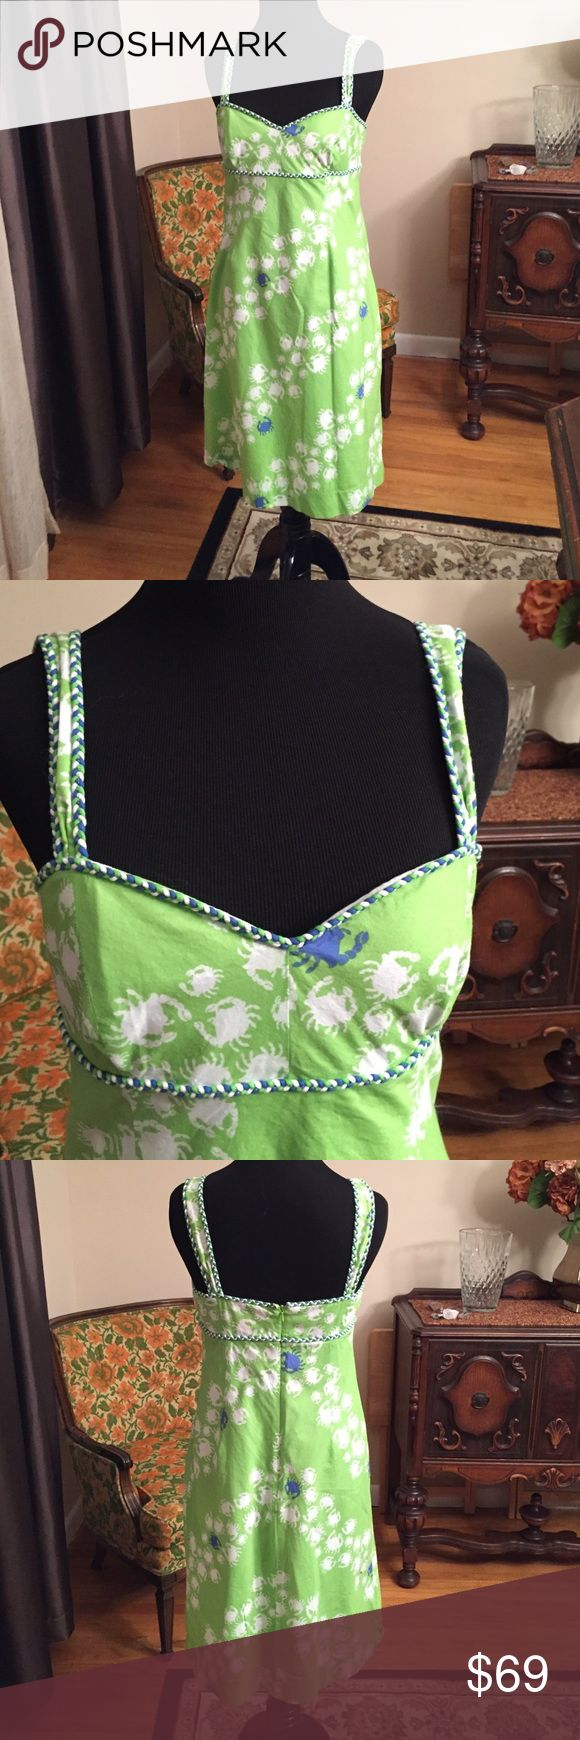 Vintage Lilly Pulitzer sundress 4-6 vintage Lilly Pulitzer line green blue and white lined crab dress. I wore this once in Hawaii to rave reviews but quickly outgrew it. This is lined and the quality is beautiful. It is a size 6 but runs as a small 6 or a 4 Lilly Pulitzer Dresses